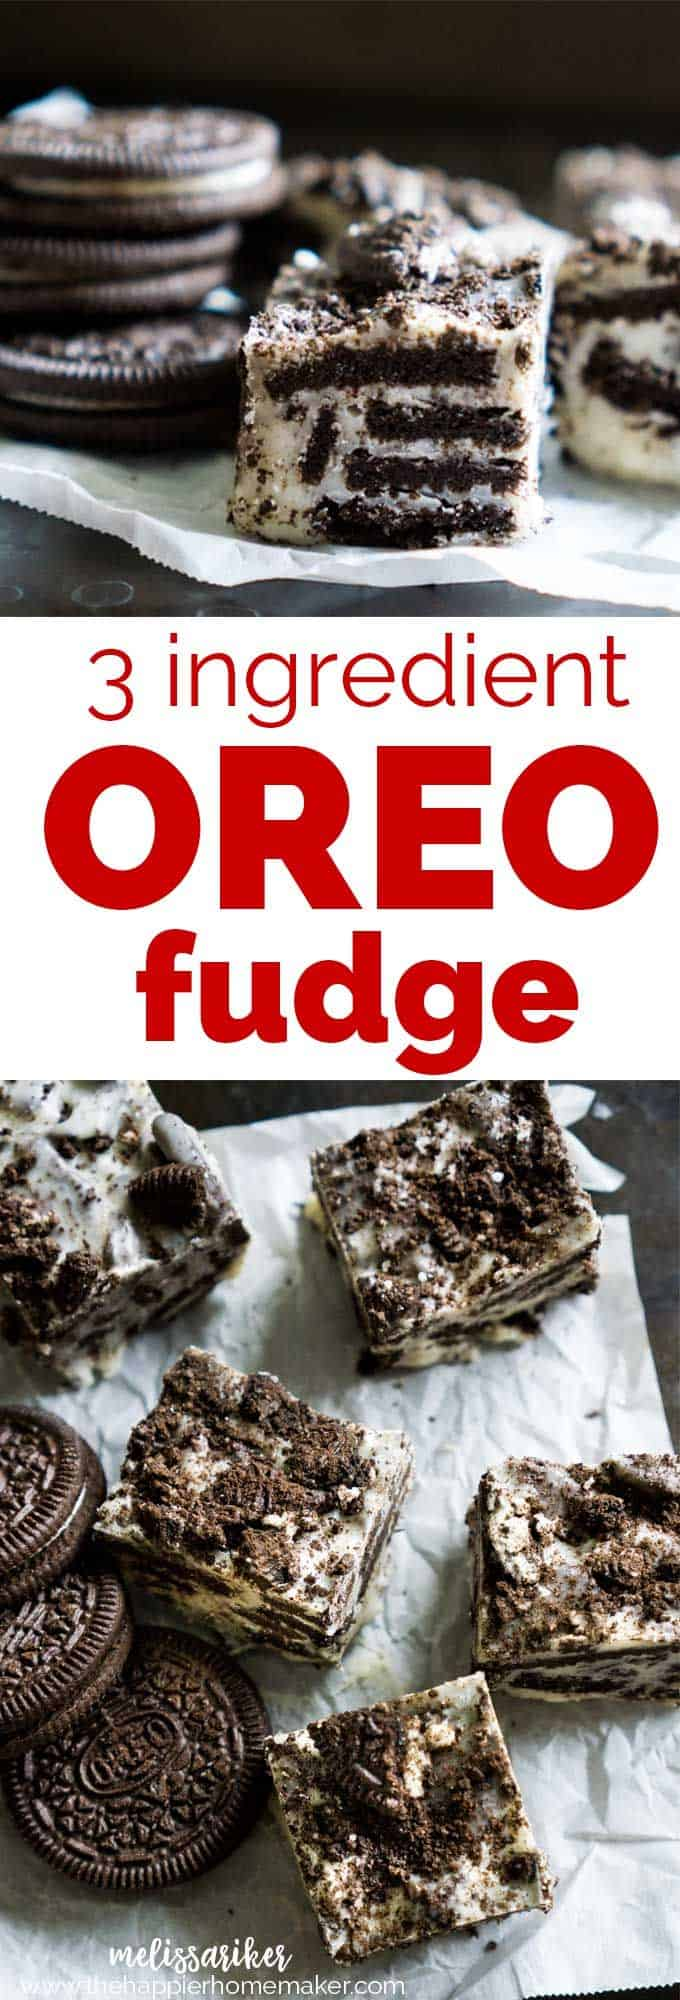 3-ingredient Oreo fudge